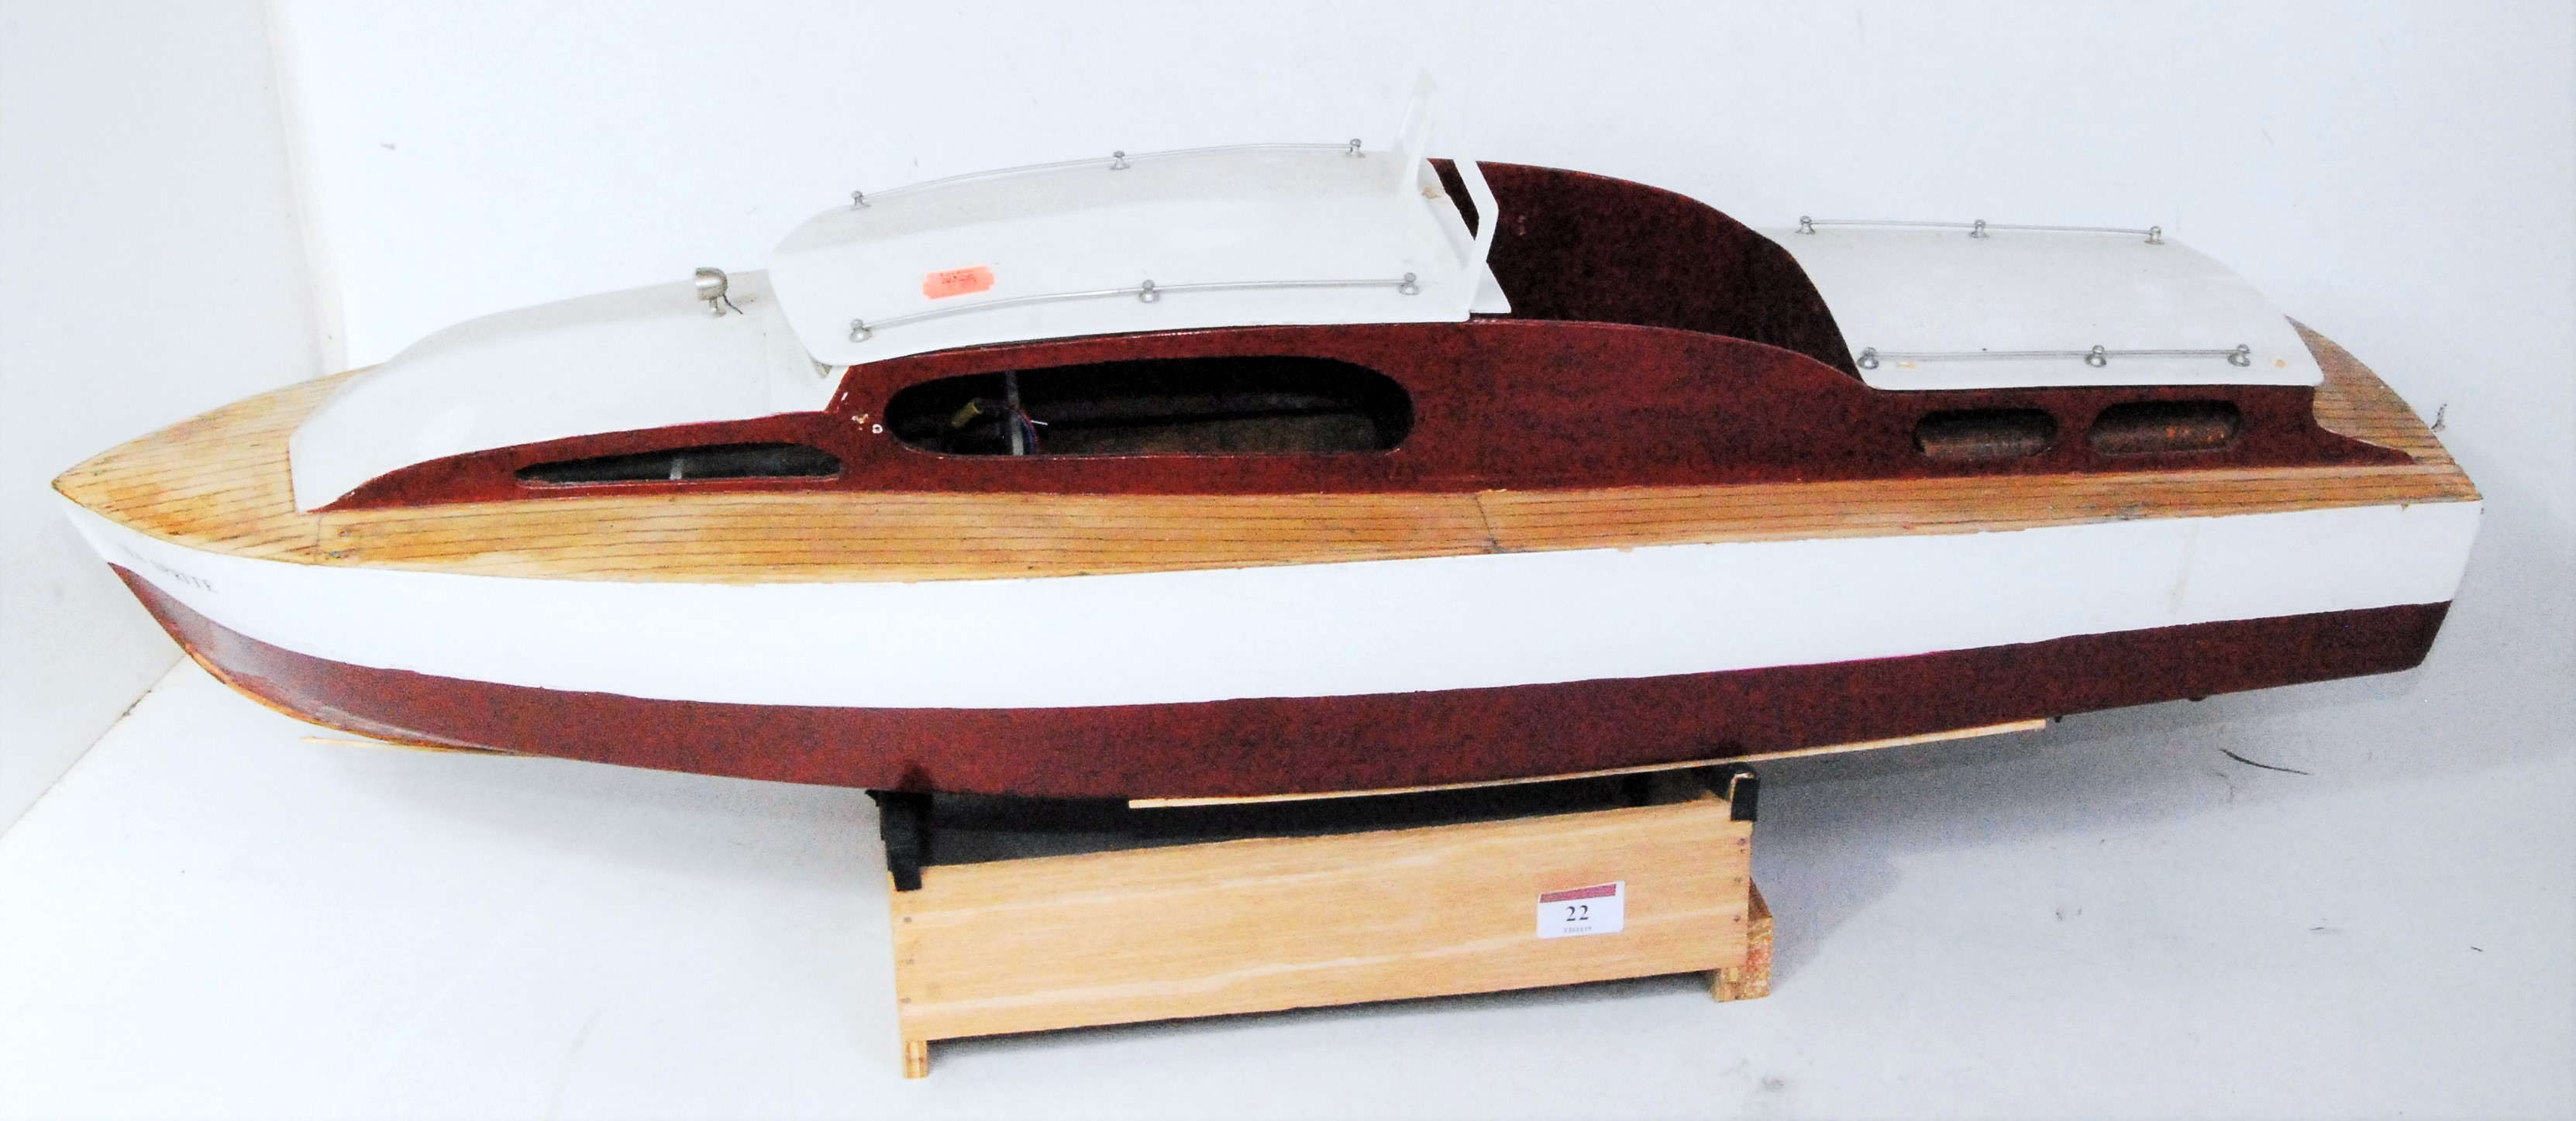 Lot 22 - A kit built wooden and balsa wood model of a radio controlled cabin cruiser finished in maroon and